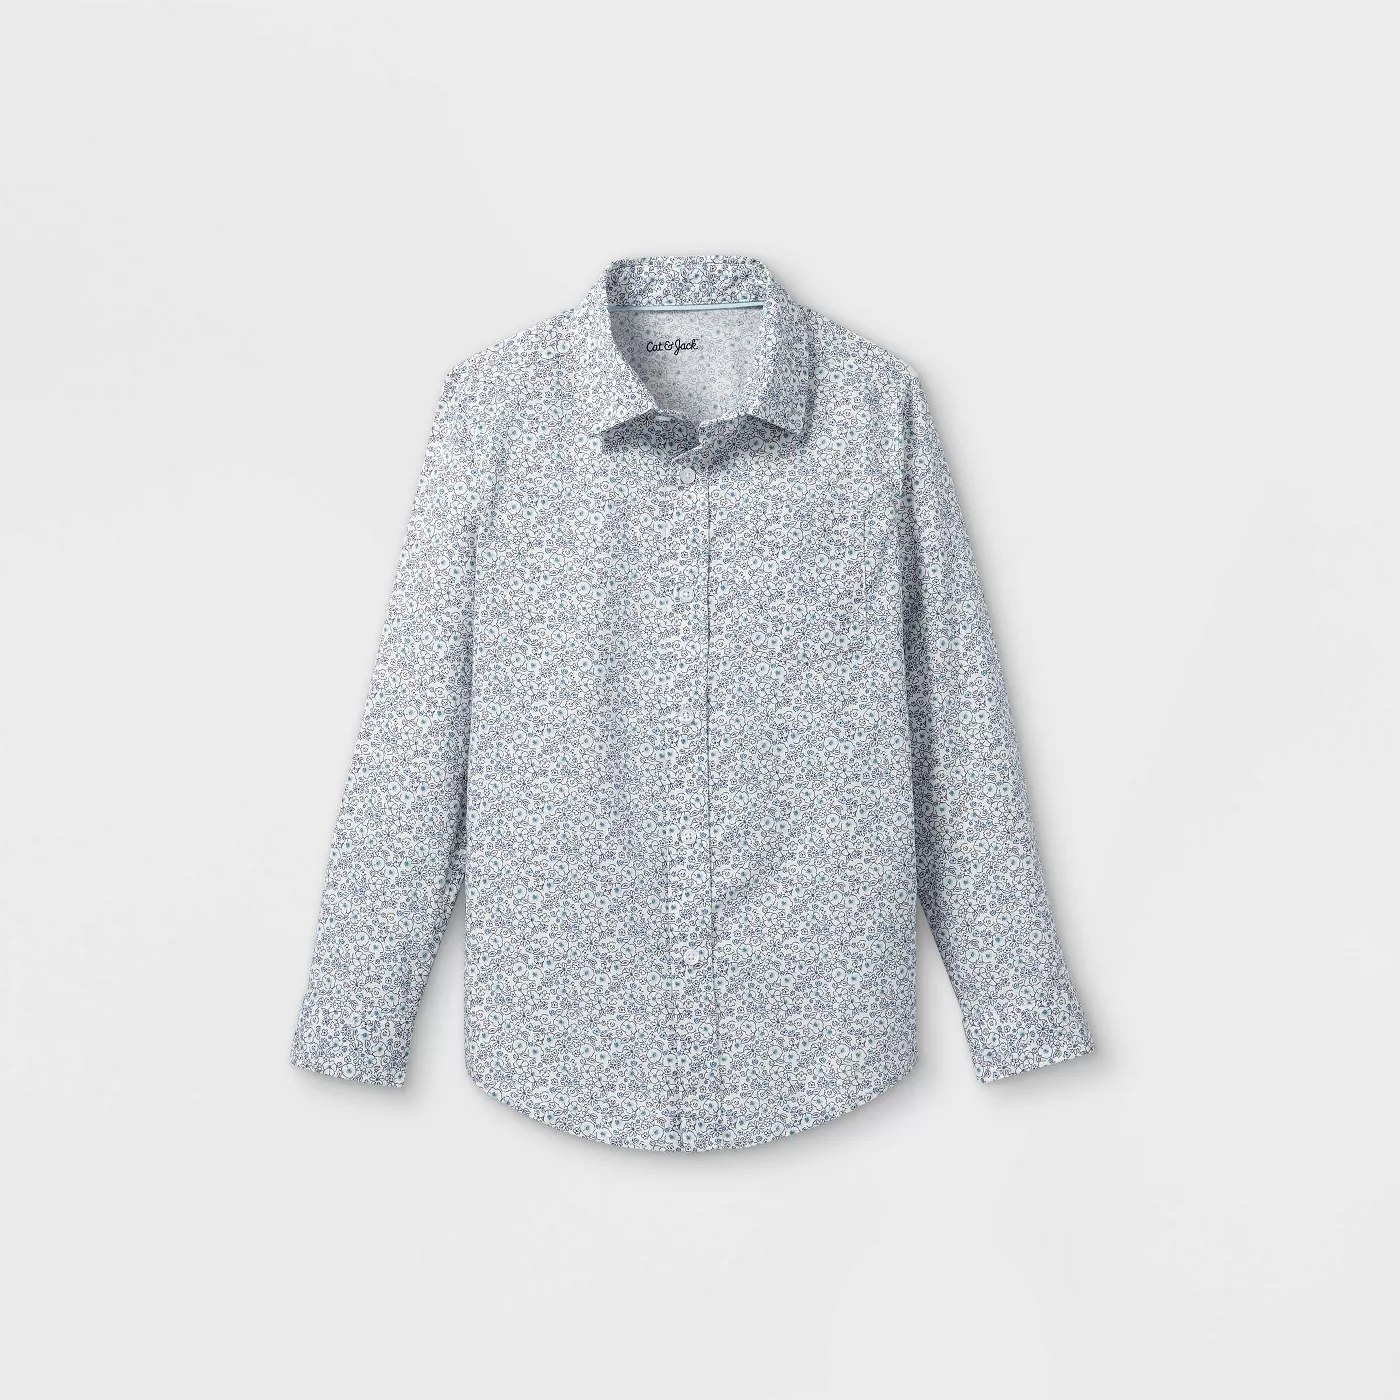 The cream and blue button-down